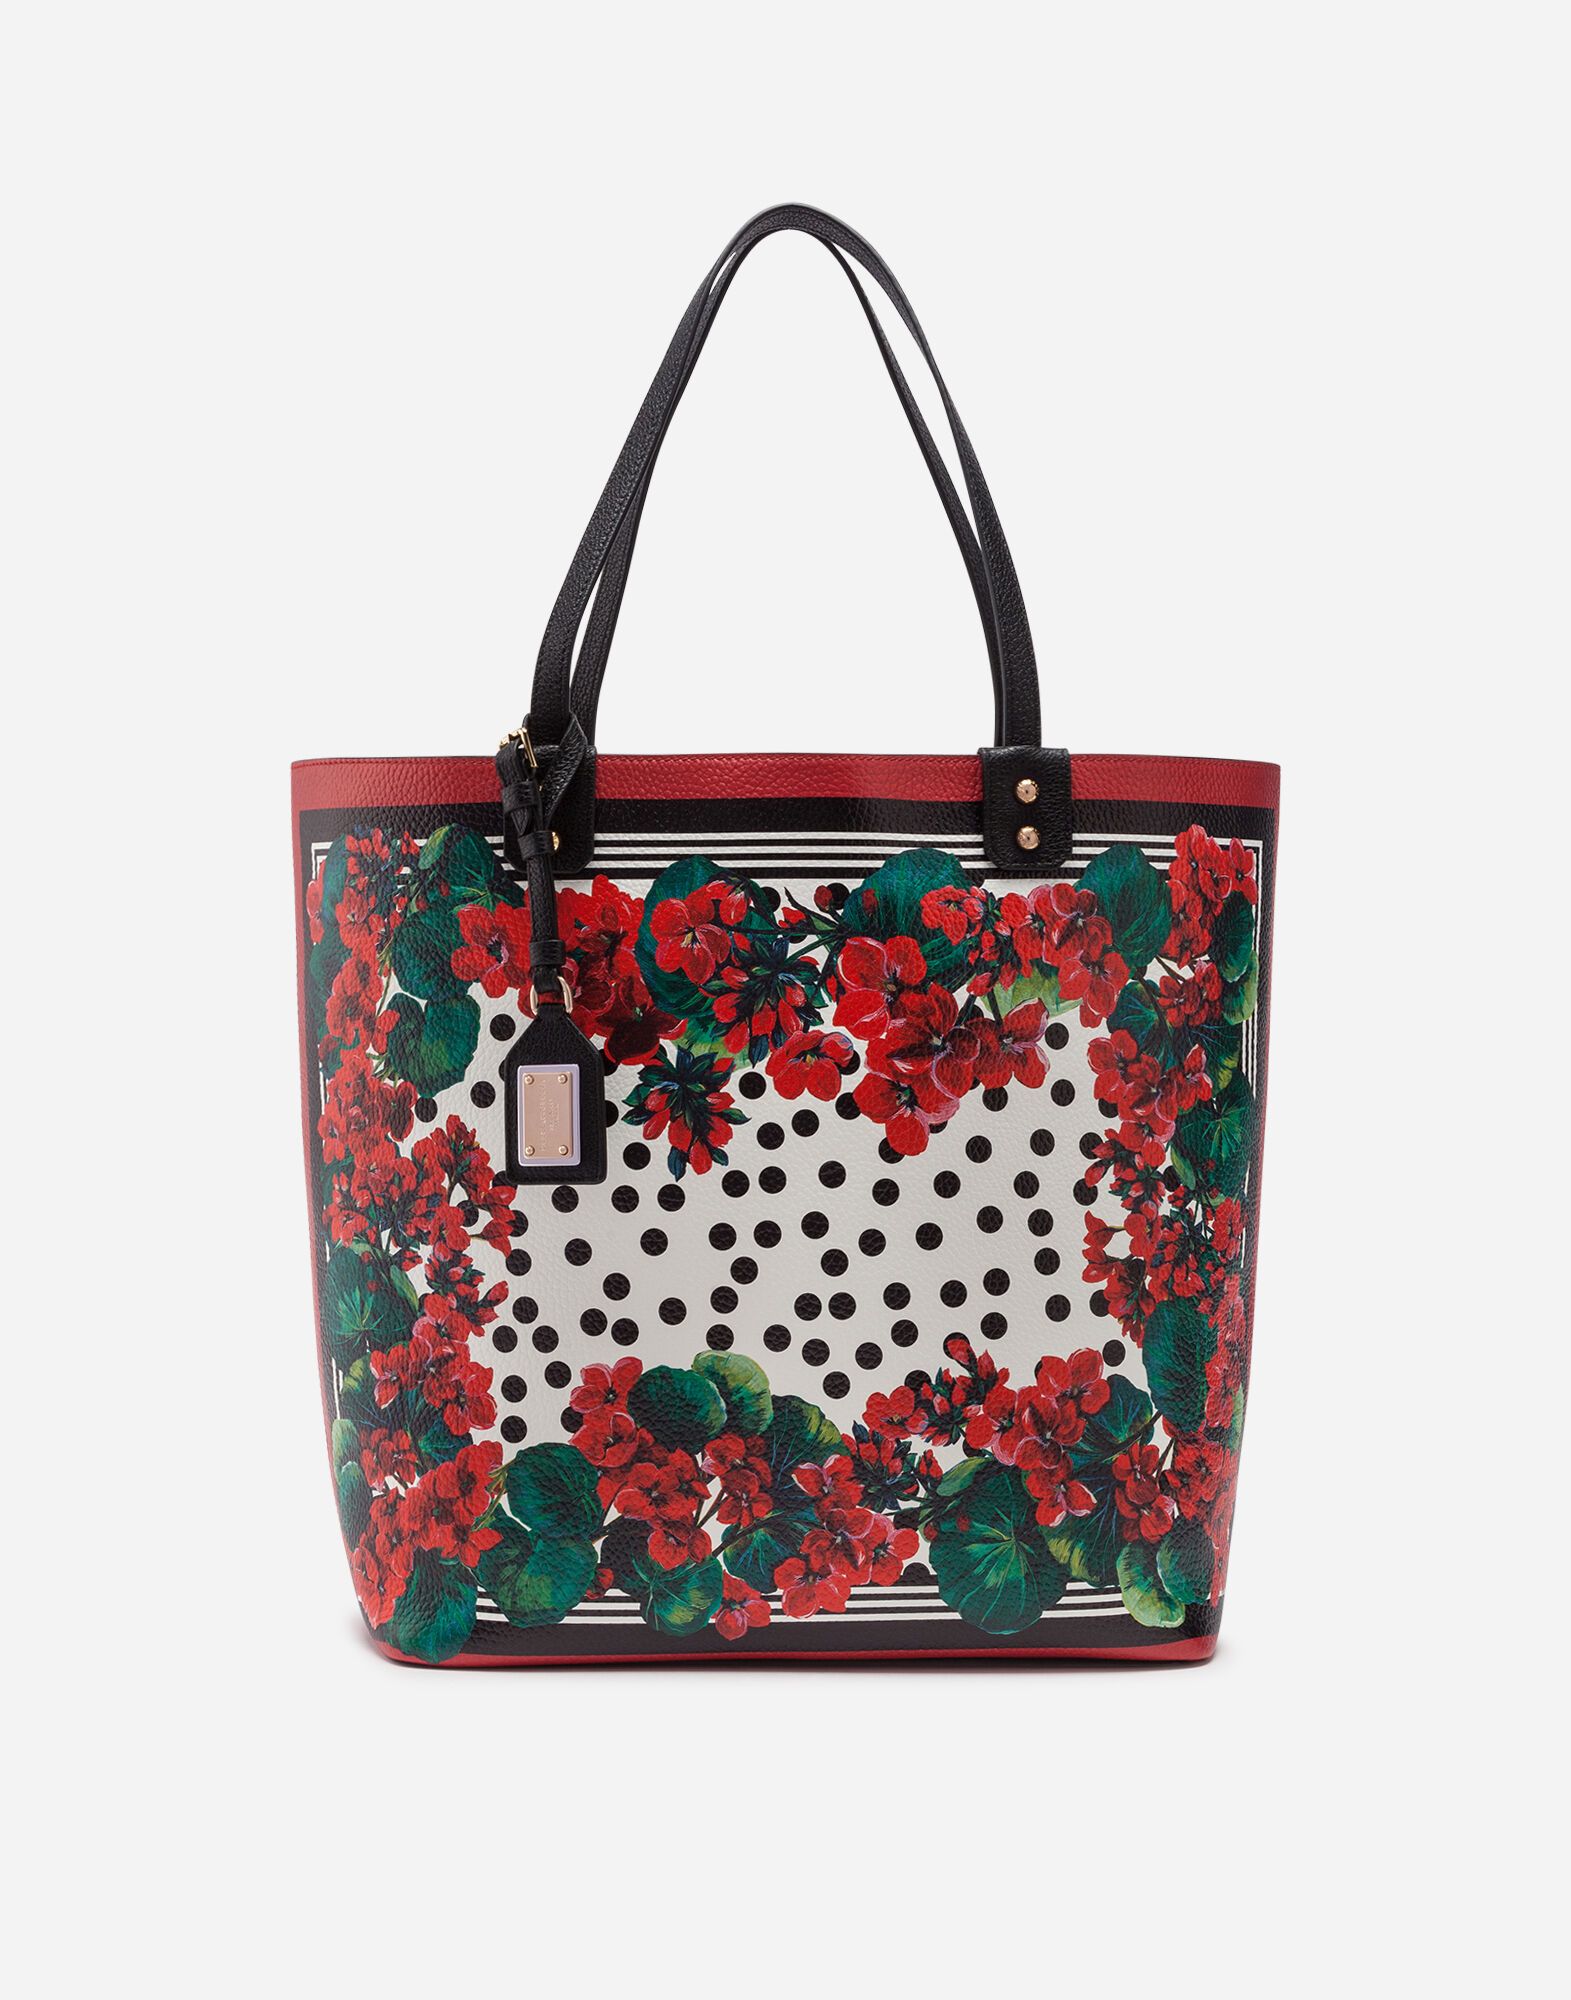 Waterproof Library Bags Australia Women S Bags And Purses Dolce Gabbana